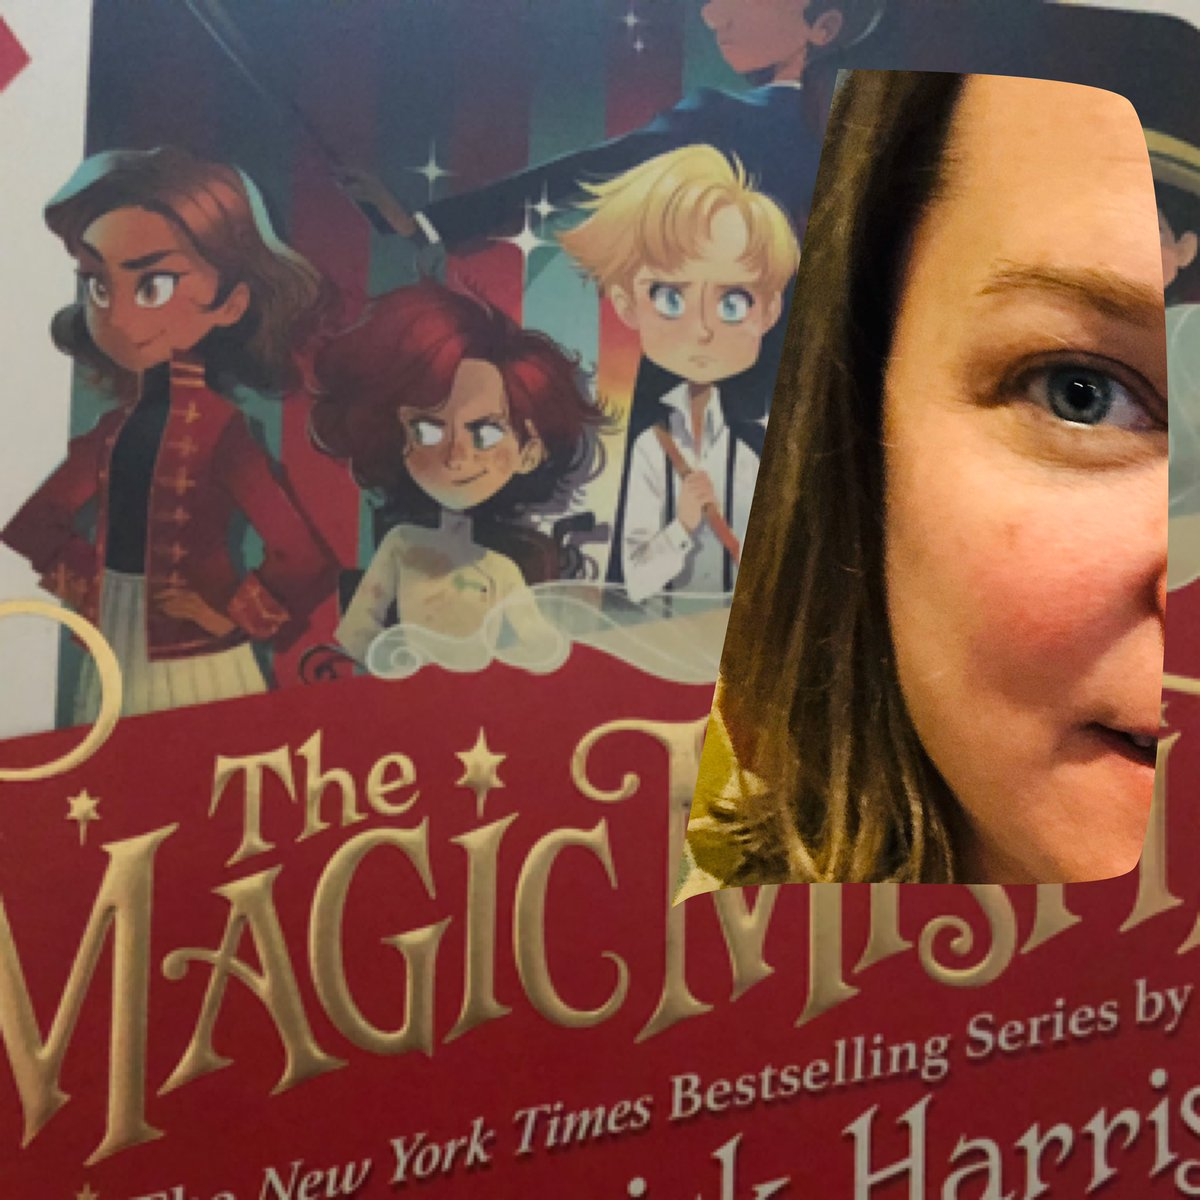 I joined the cover of #themagicmisfits today. #EHSreads2020 #flyeastern @ActuallyNPH @CarlaKent_1